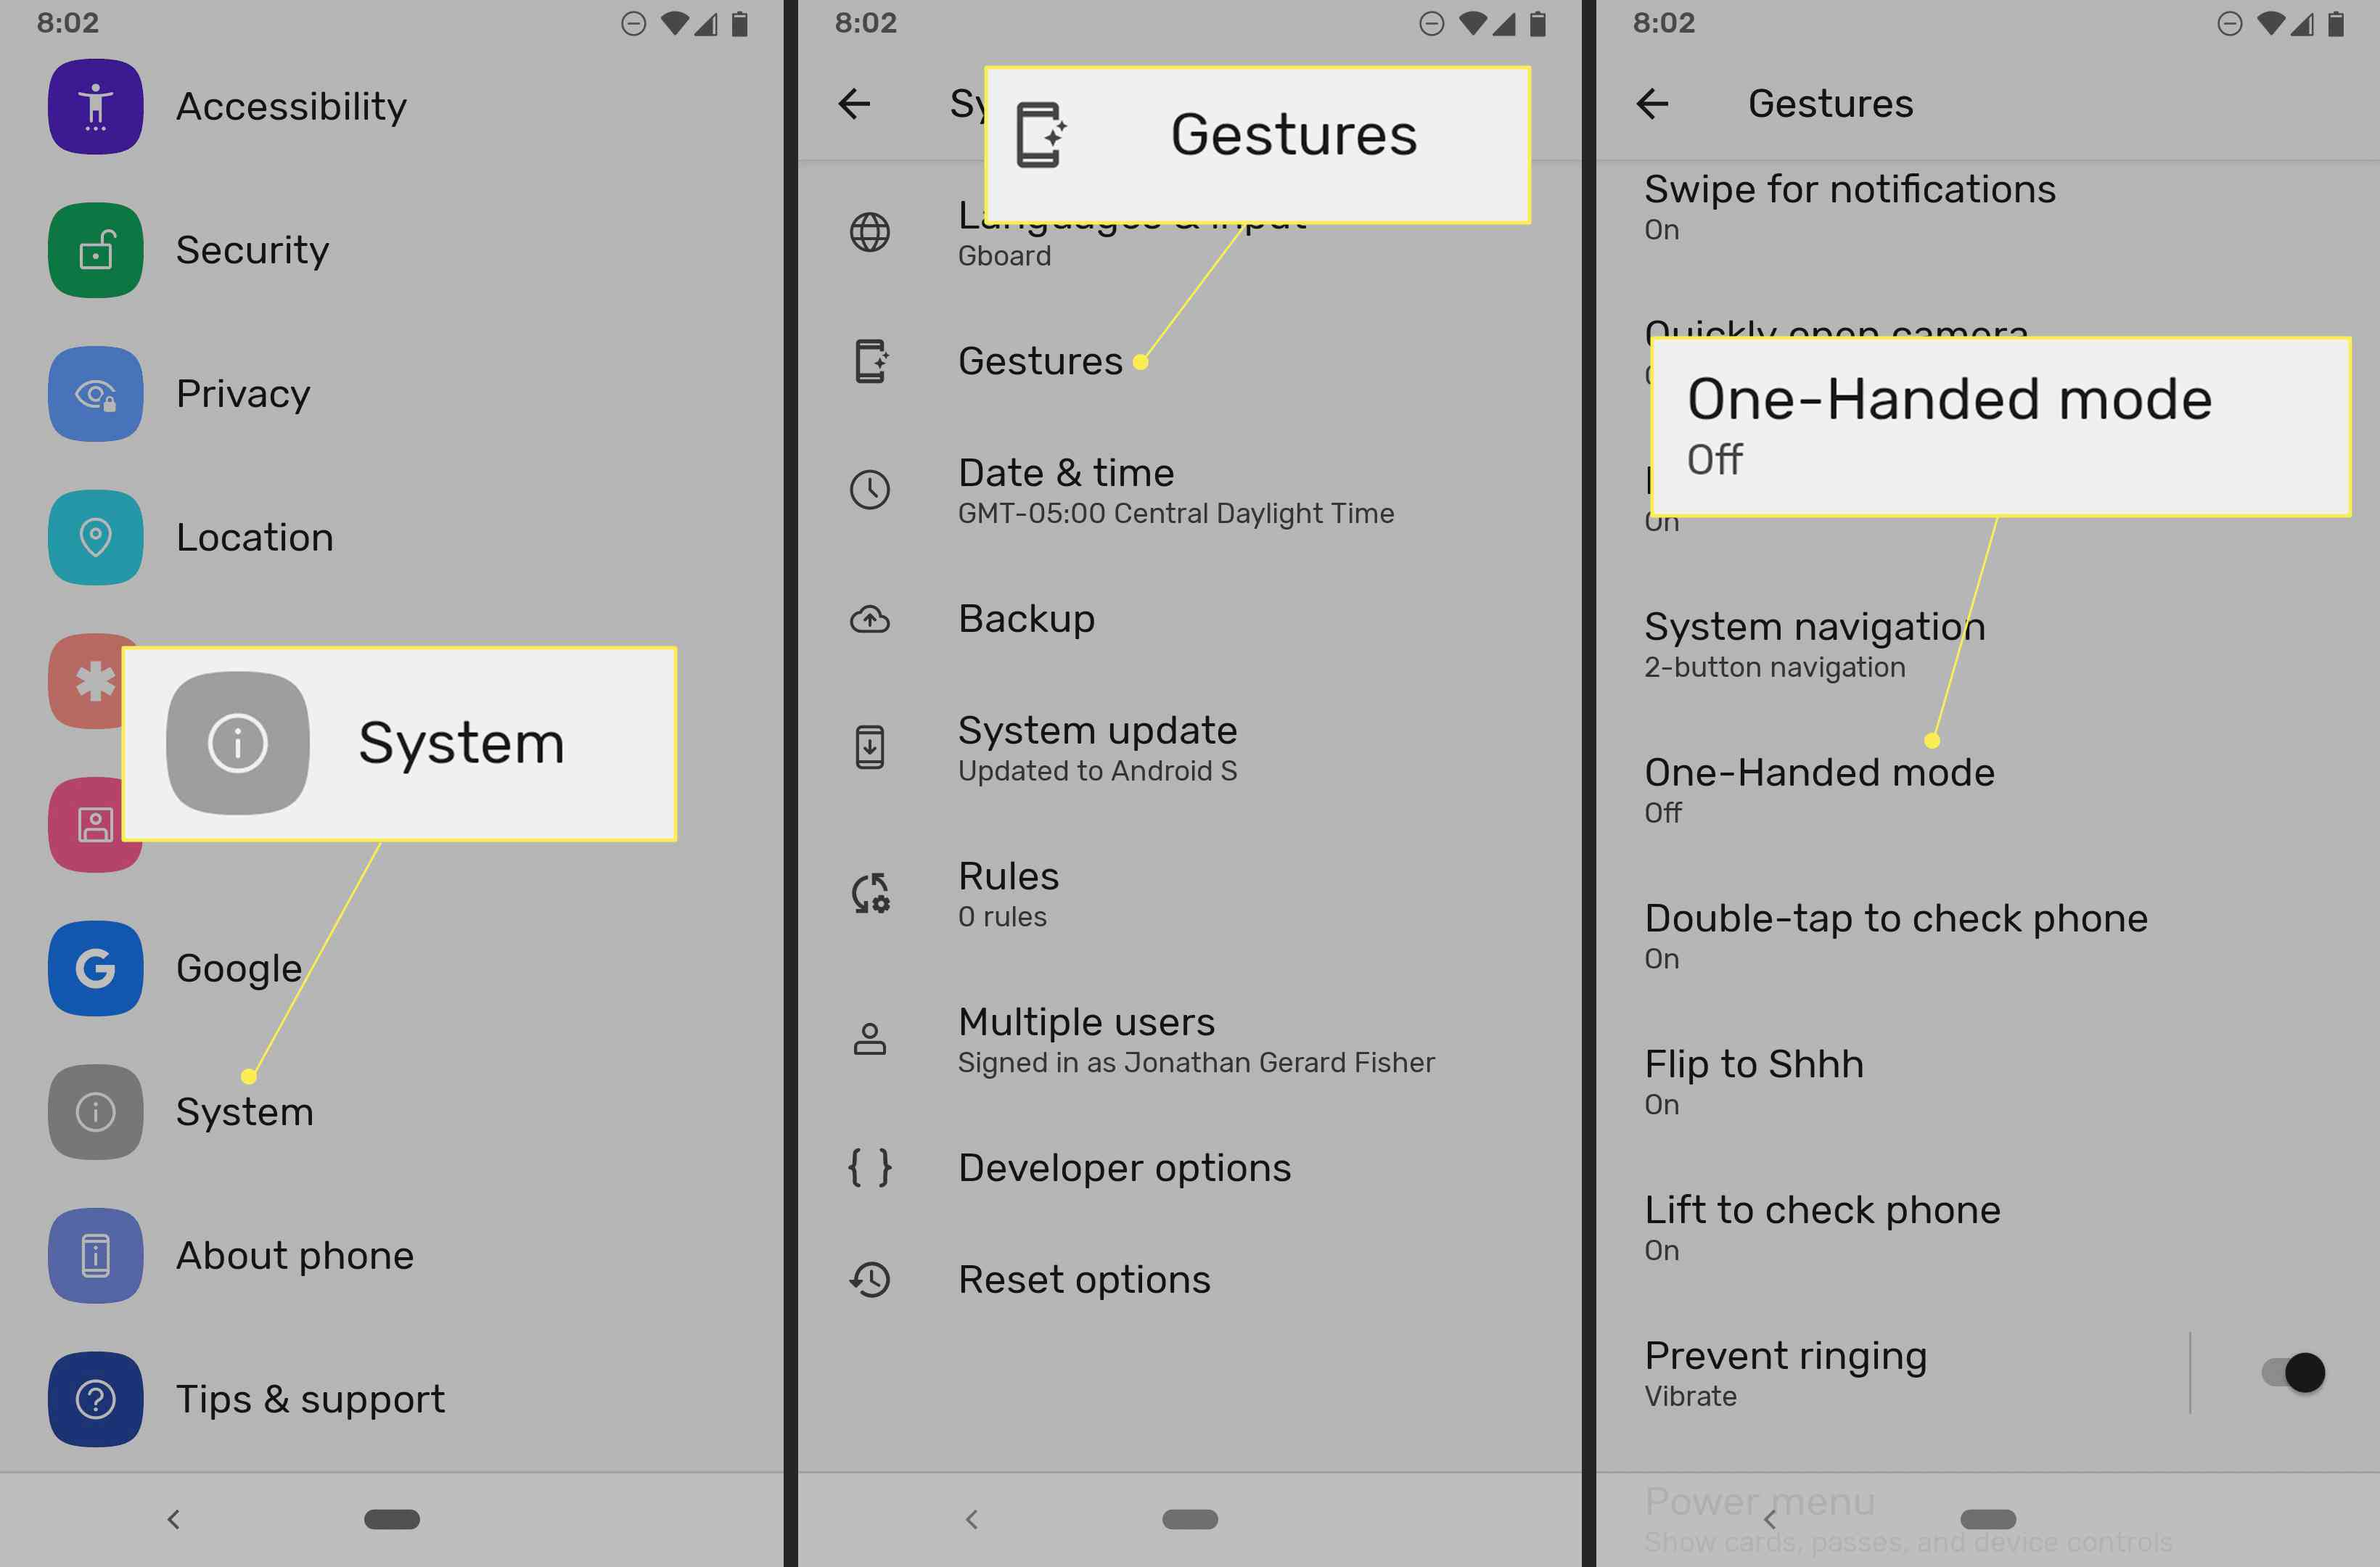 Android 12 Settings with System, Gestures, and One-Handed mode highlighted